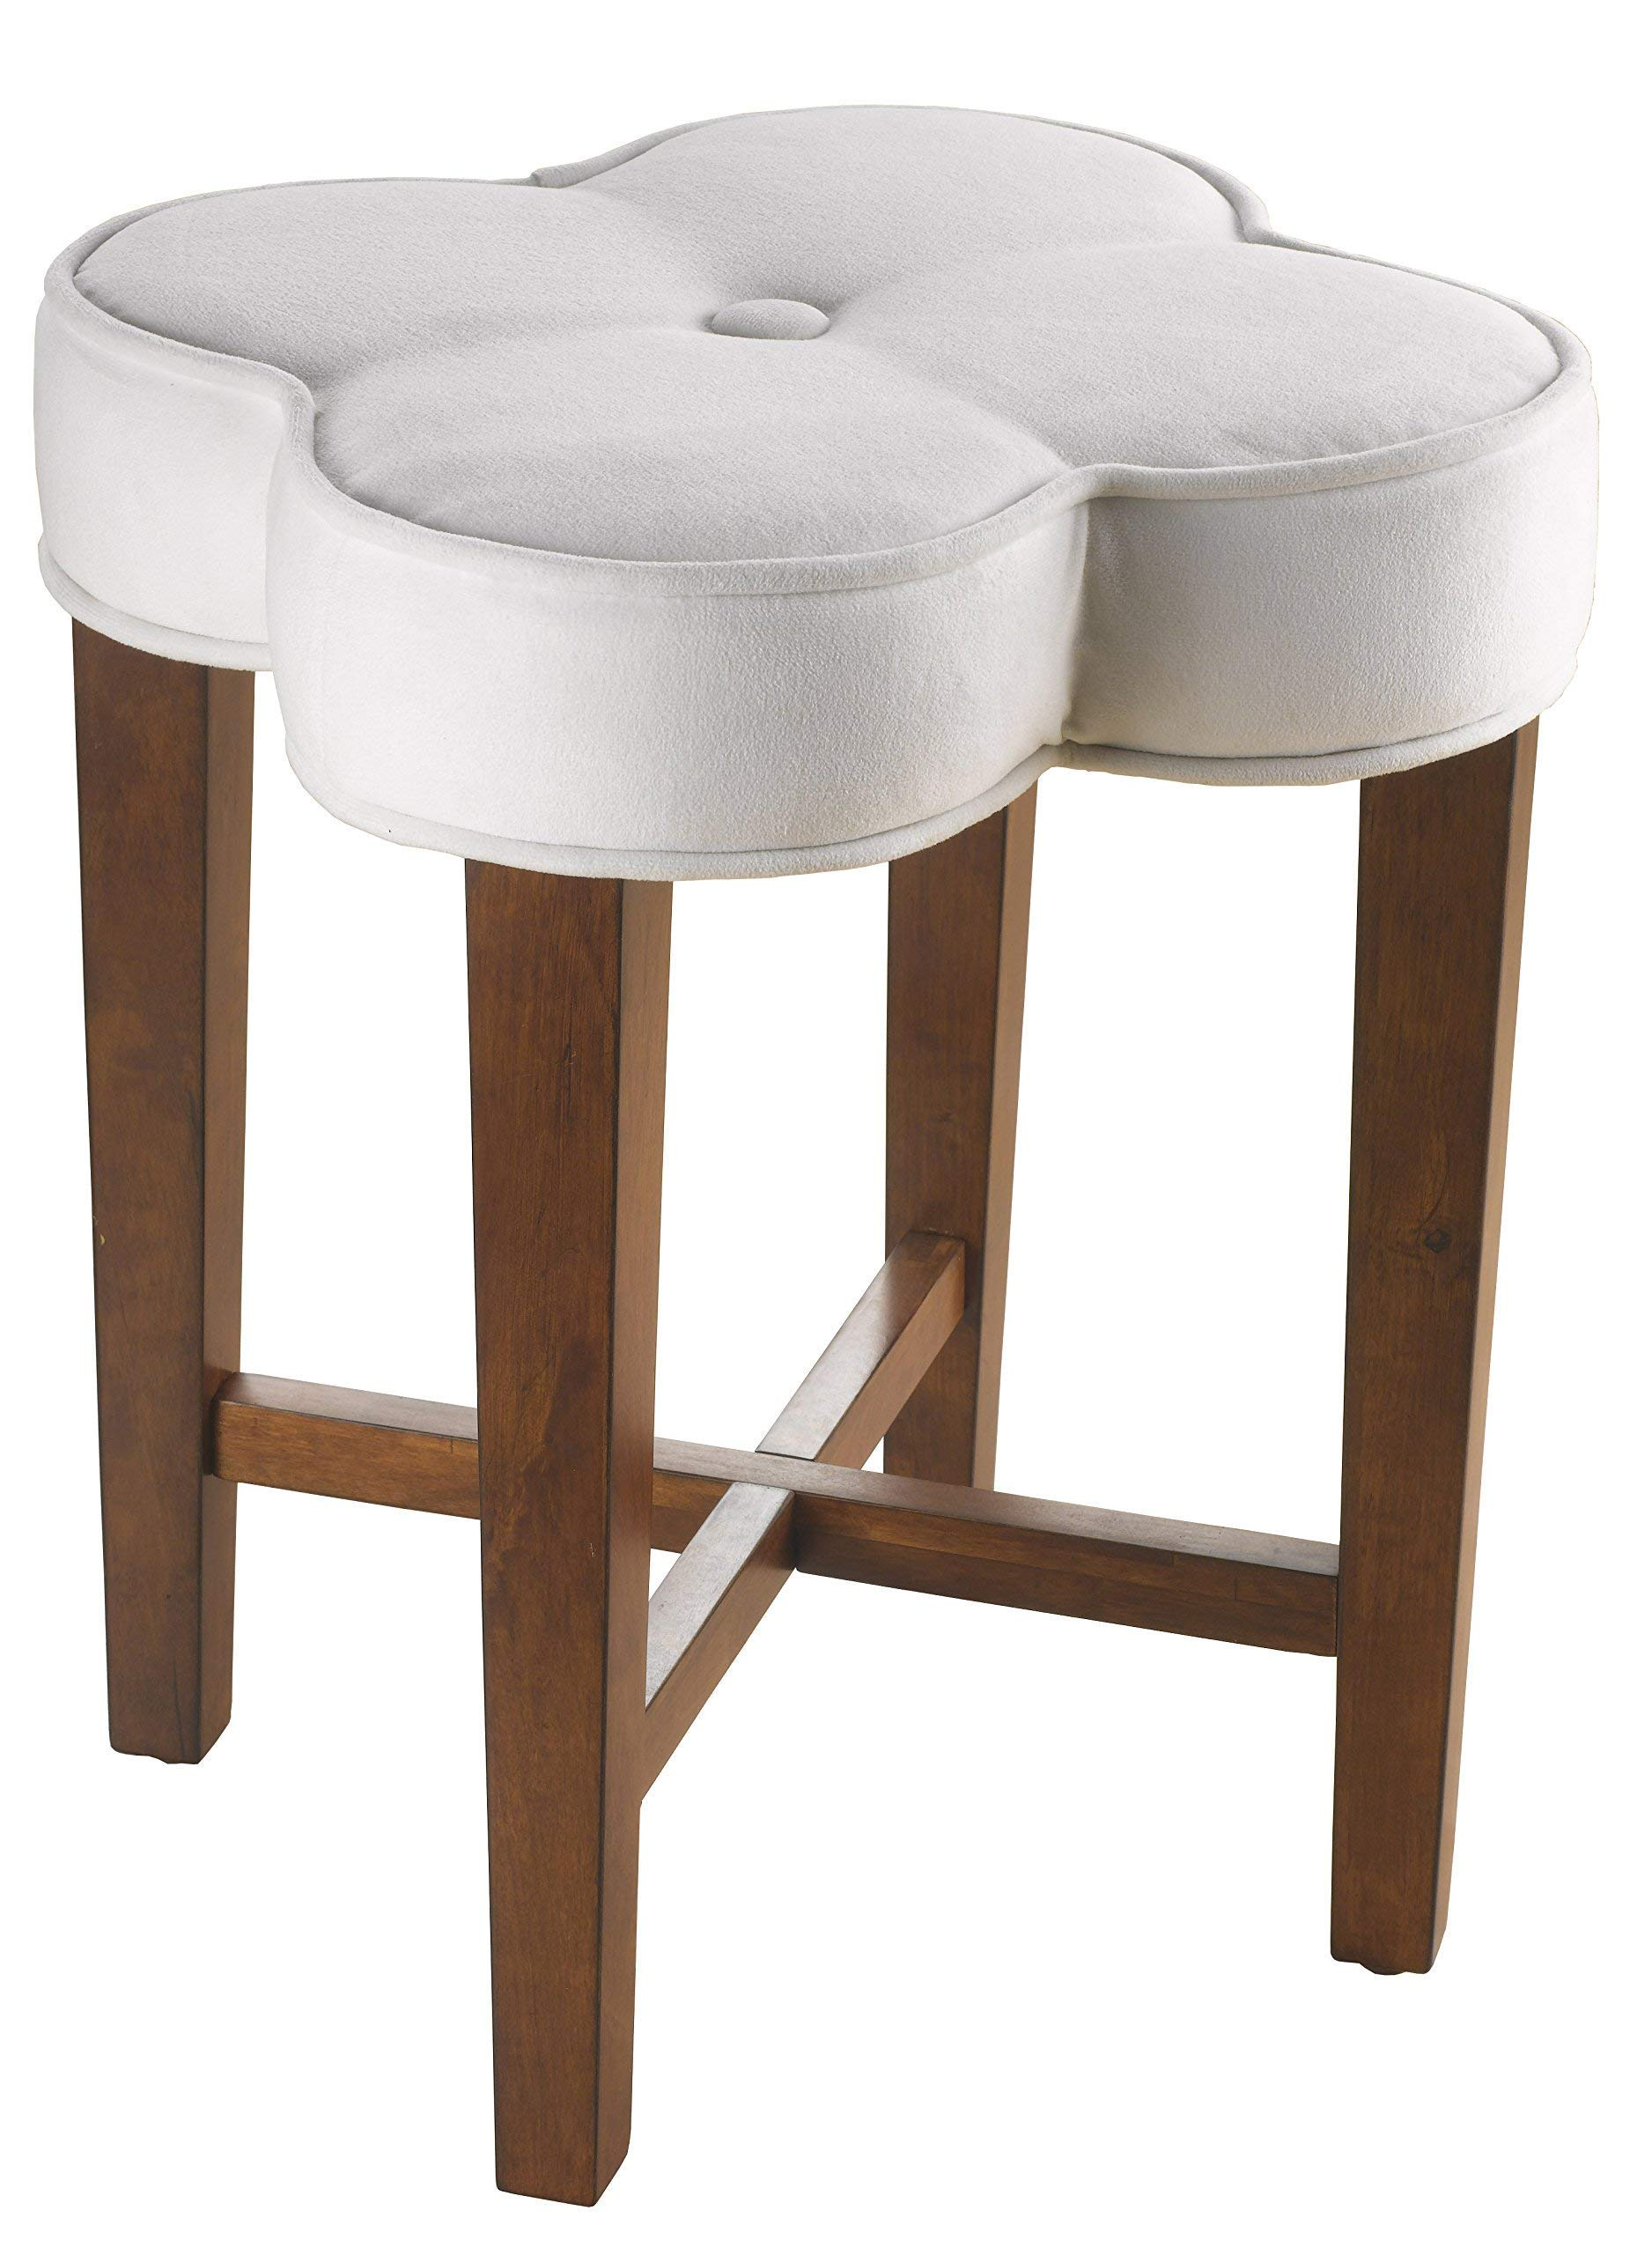 Hillsdale Furniture Clover Vanity Stool, White by Hillsdale Furniture